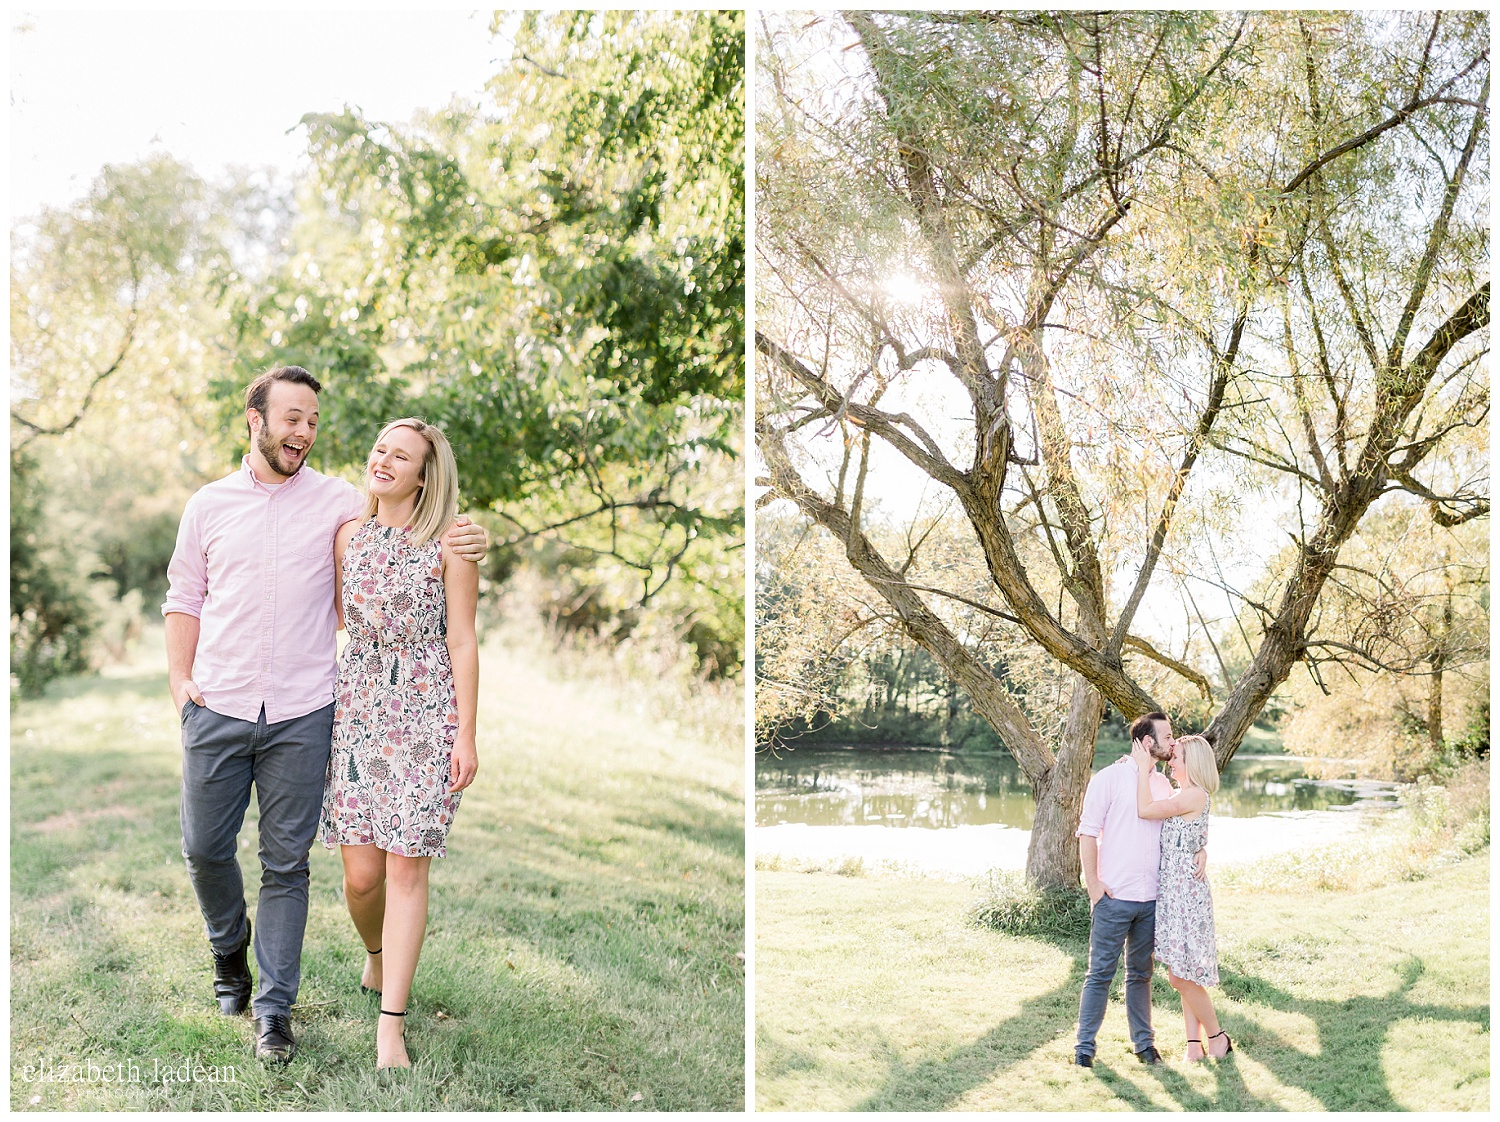 Kansas-City-Adventurous-Engagement-Photos-S+C2018-elizabeth-ladean-photography-photo_0363.jpg